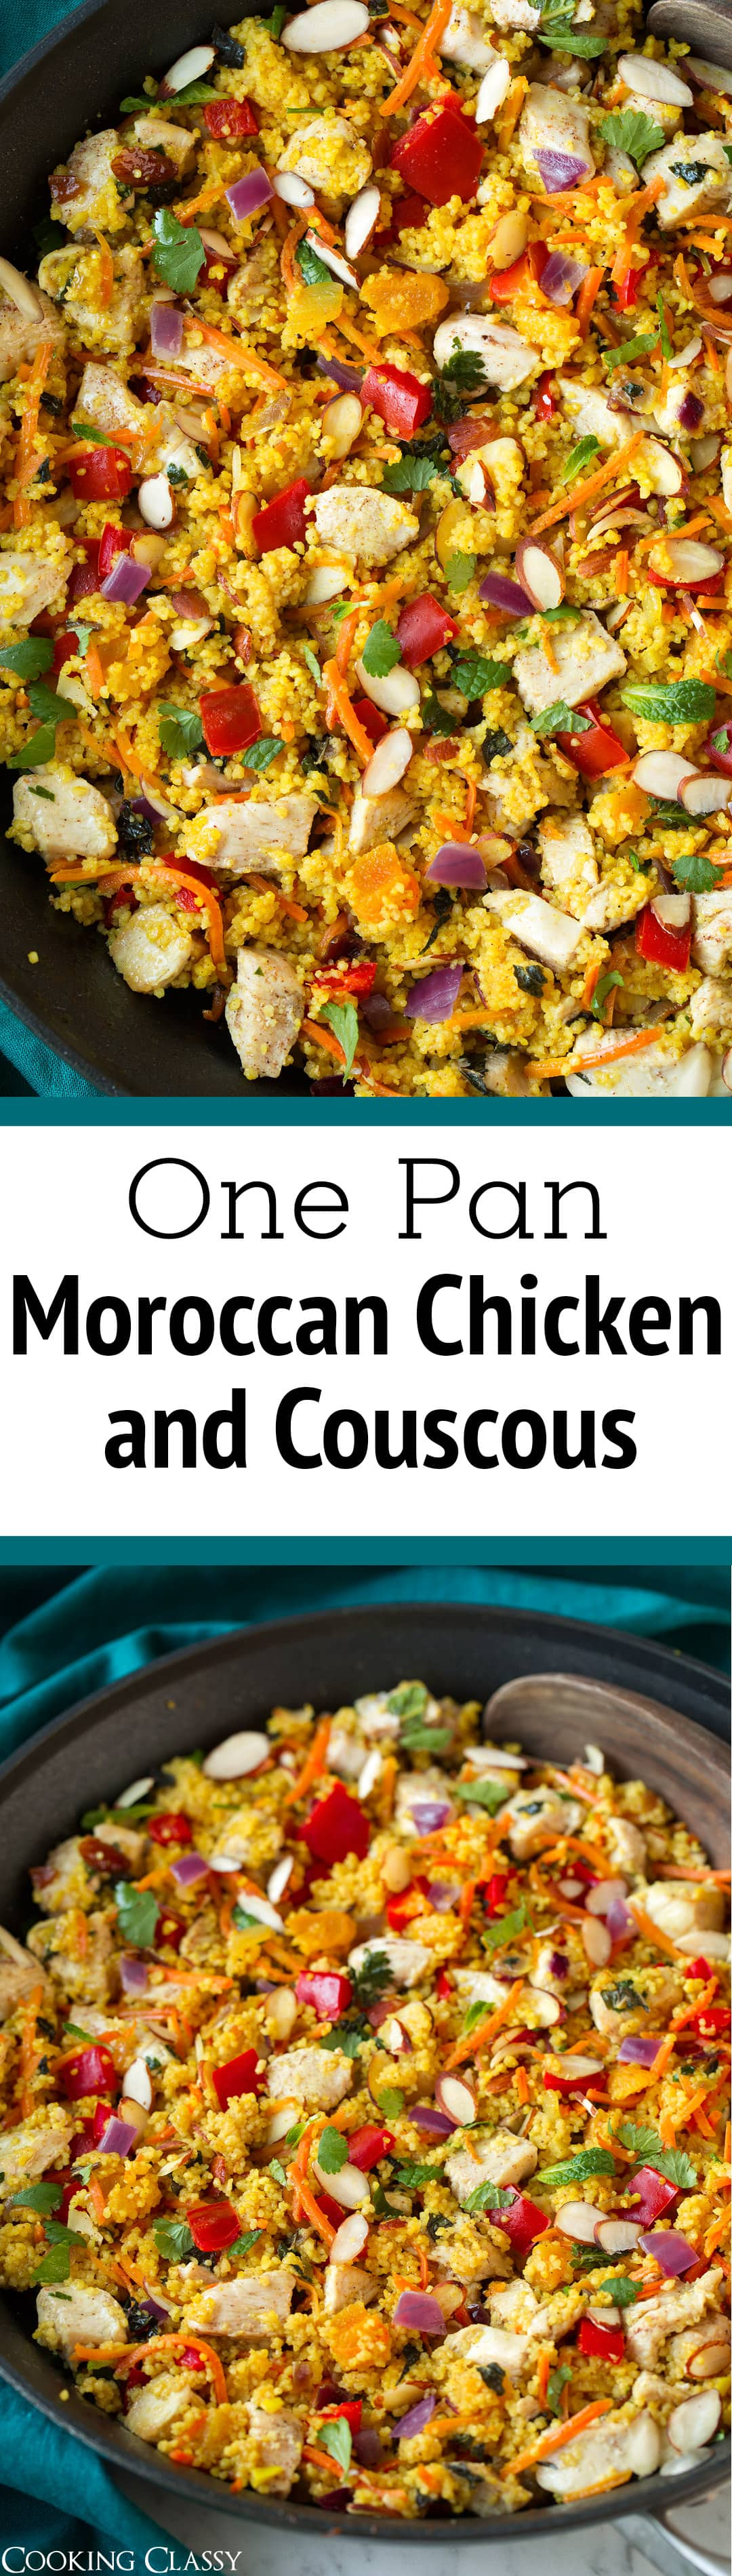 One Pan Moroccan Chicken and Couscous - this is one of my favorite one pan dinners to date! It has a delicious blend of flavors and textures, it's a healthy dinner, and it's brimming with those irresistible deliciously spiced Moroccan flavors. #easy #healthy #onepan #moroccan #couscous #chickenrecipe